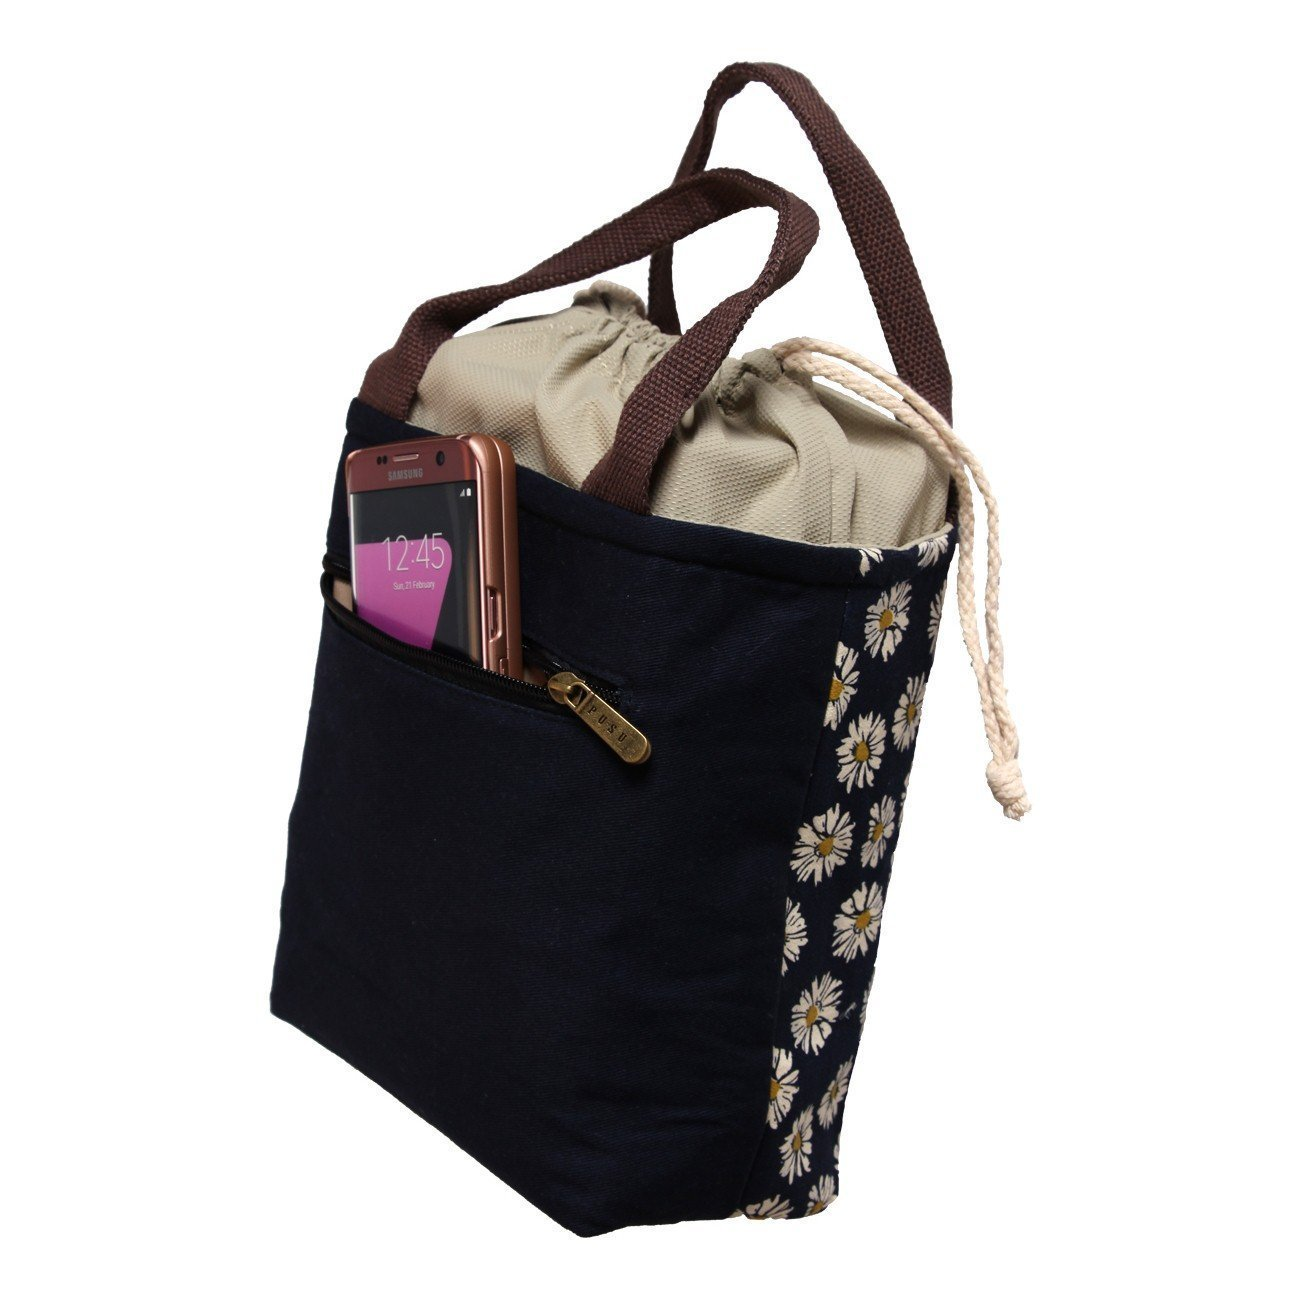 Insulated Lunch Bag for Women